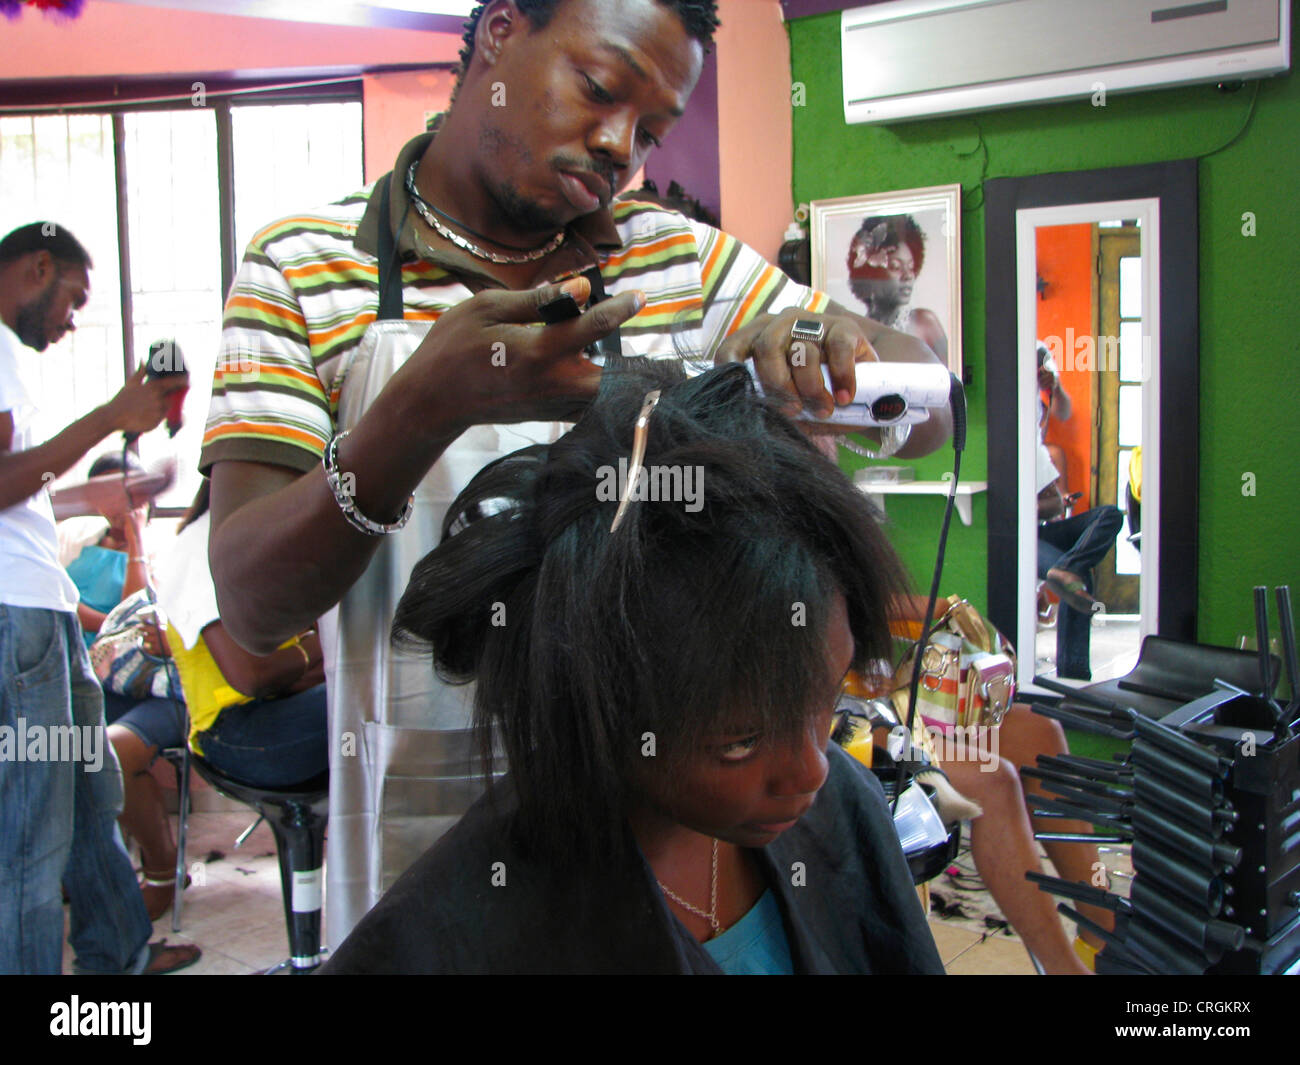 Young black woman and hair dresser in a barber shop, Haiti, Province de l'Ouest, Delmas, Port-Au-Prince - Stock Image